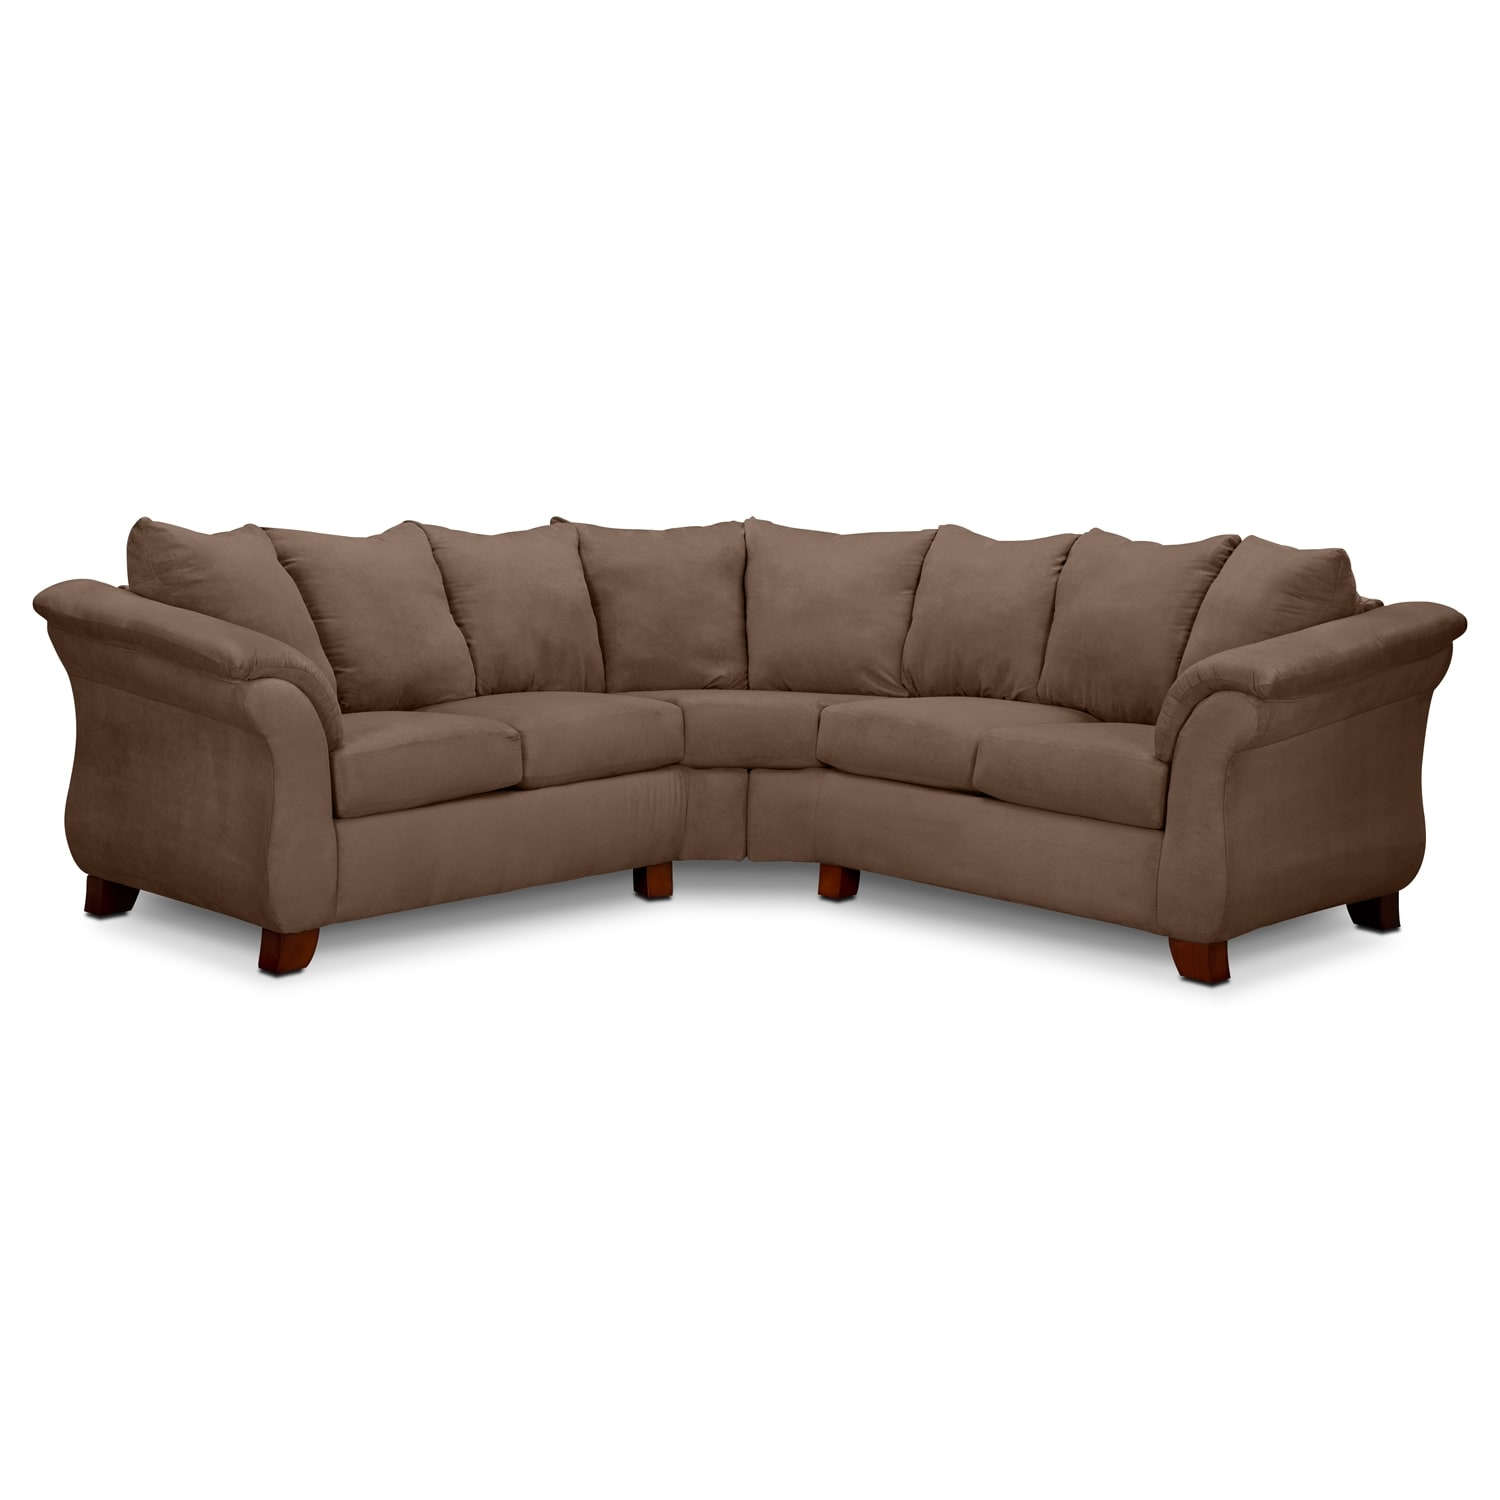 American Signature Furniture Com: Adrian 2-Piece Sectional - Taupe